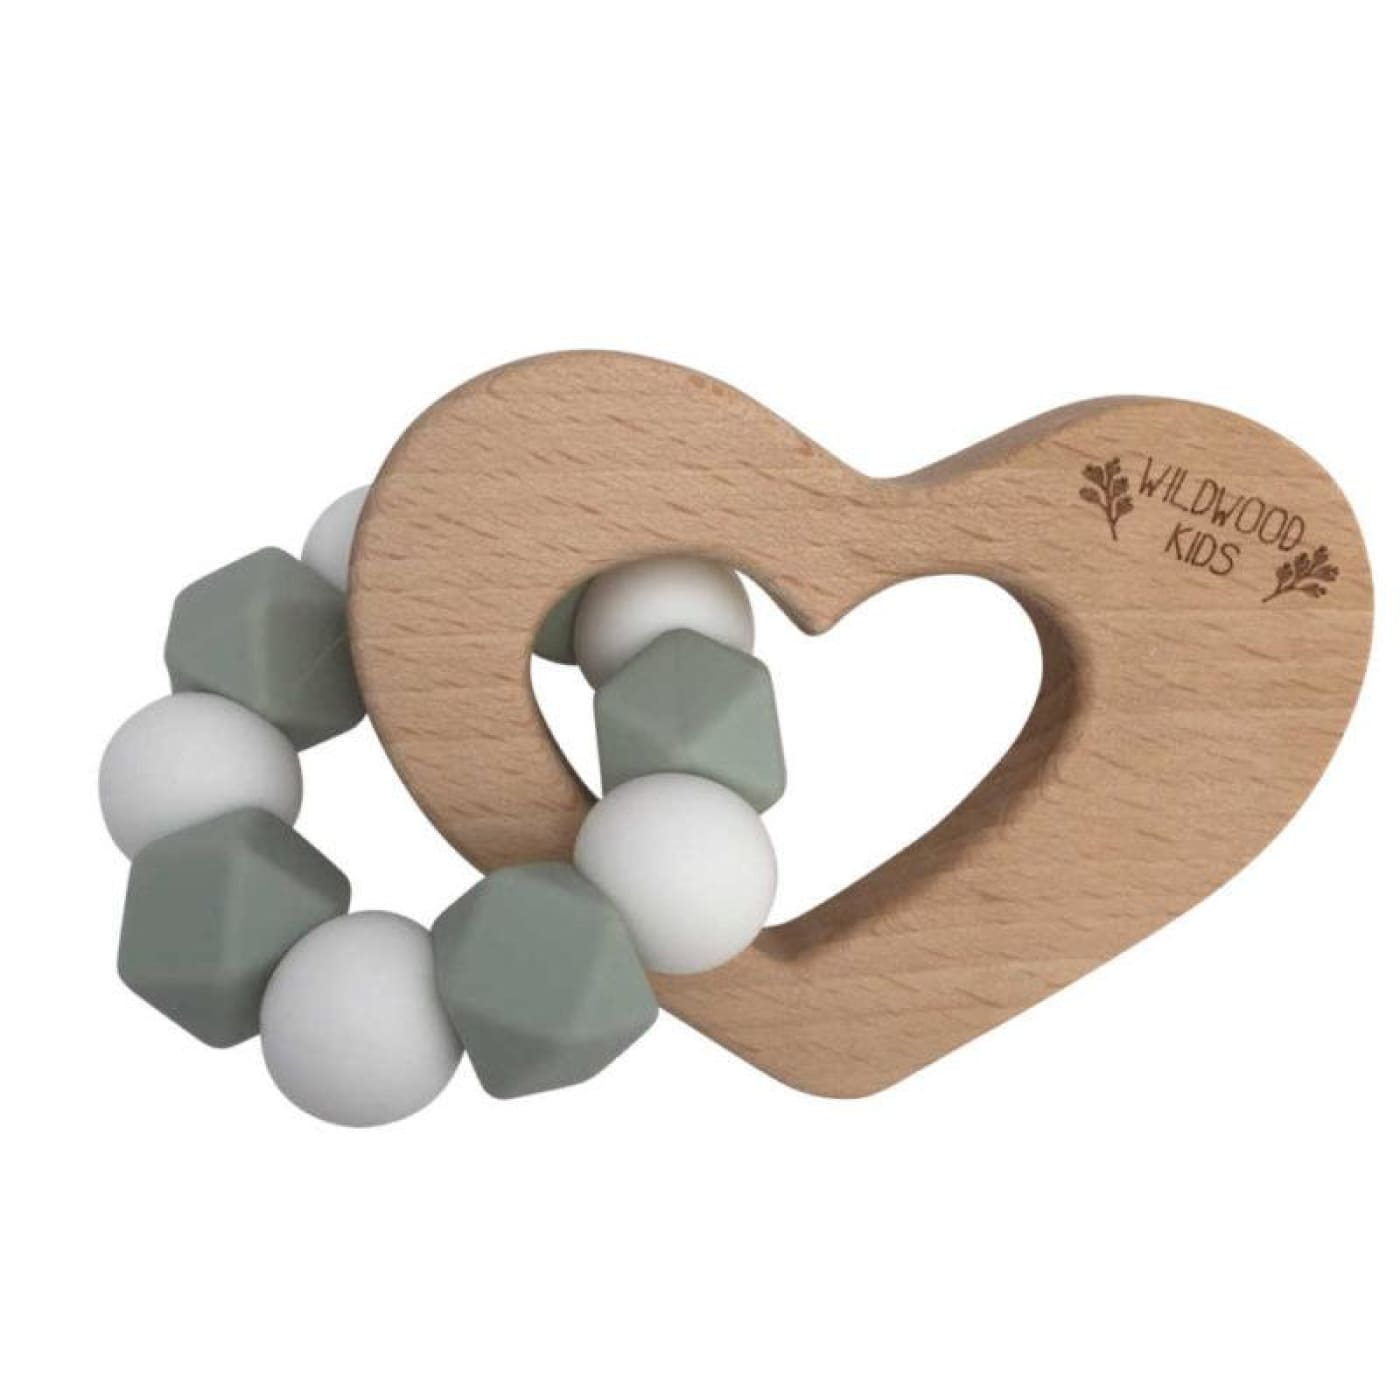 Wildwood Kids Teether - Heart Mint/White - NURSING & FEEDING - TEETHERS/TEETHING JEWELLERY